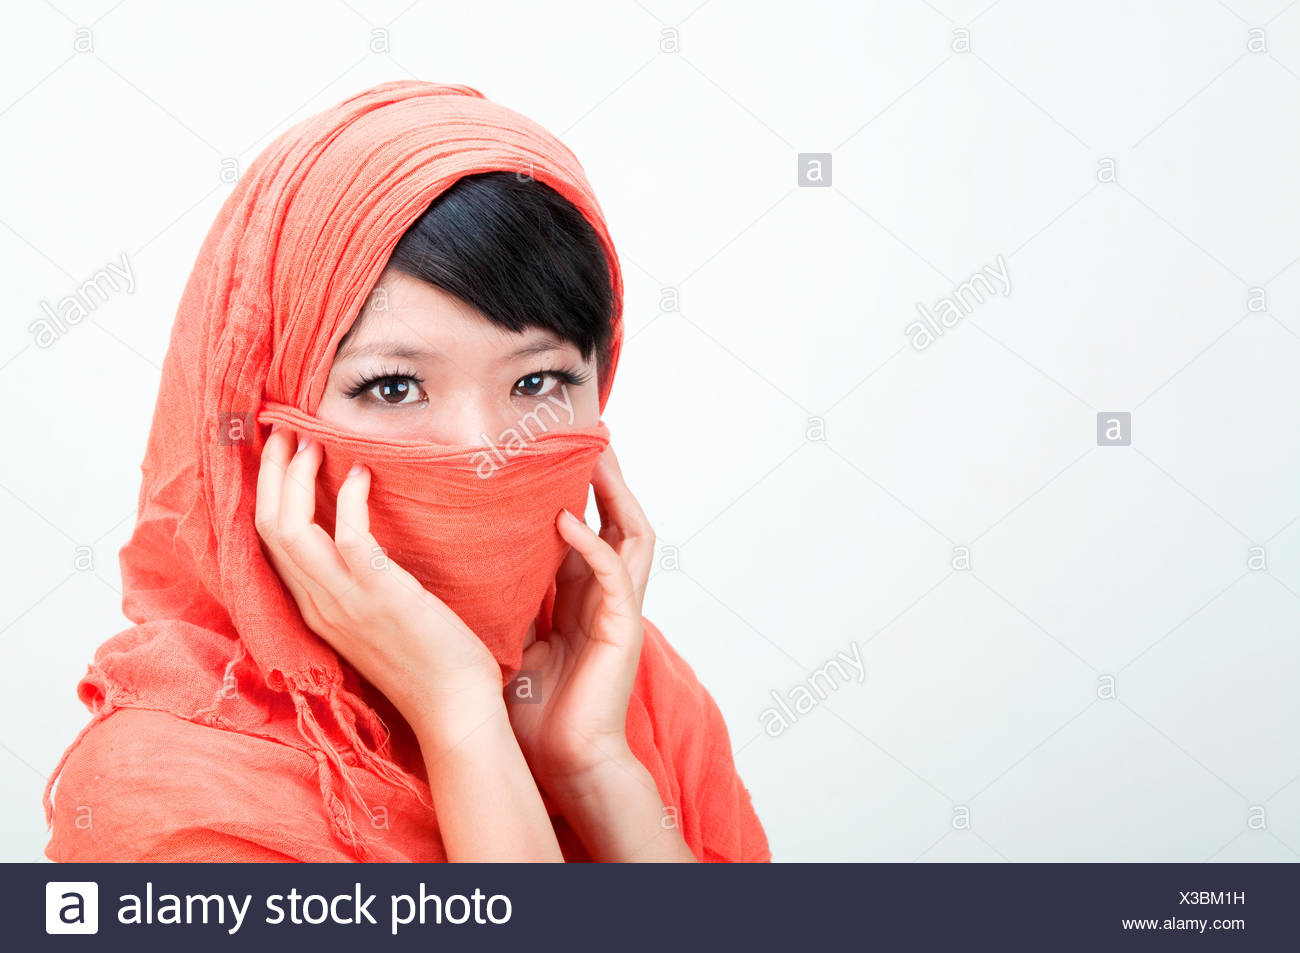 medway single muslim girls Muslim women are one of the most talked-about groups in the  and may assume it characterizes all the western women they meet  in many muslim societies,.